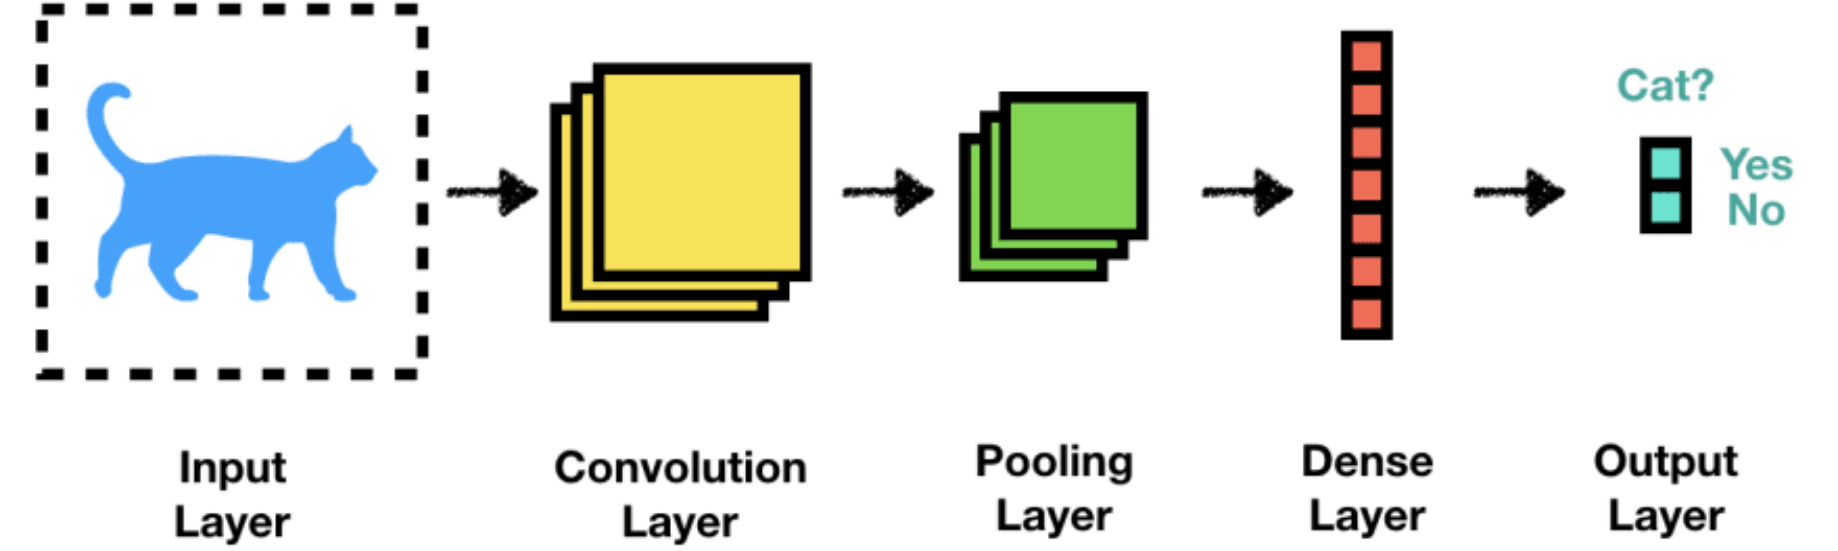 Convolutional Neural Network: A Step By Step Guide - Towards